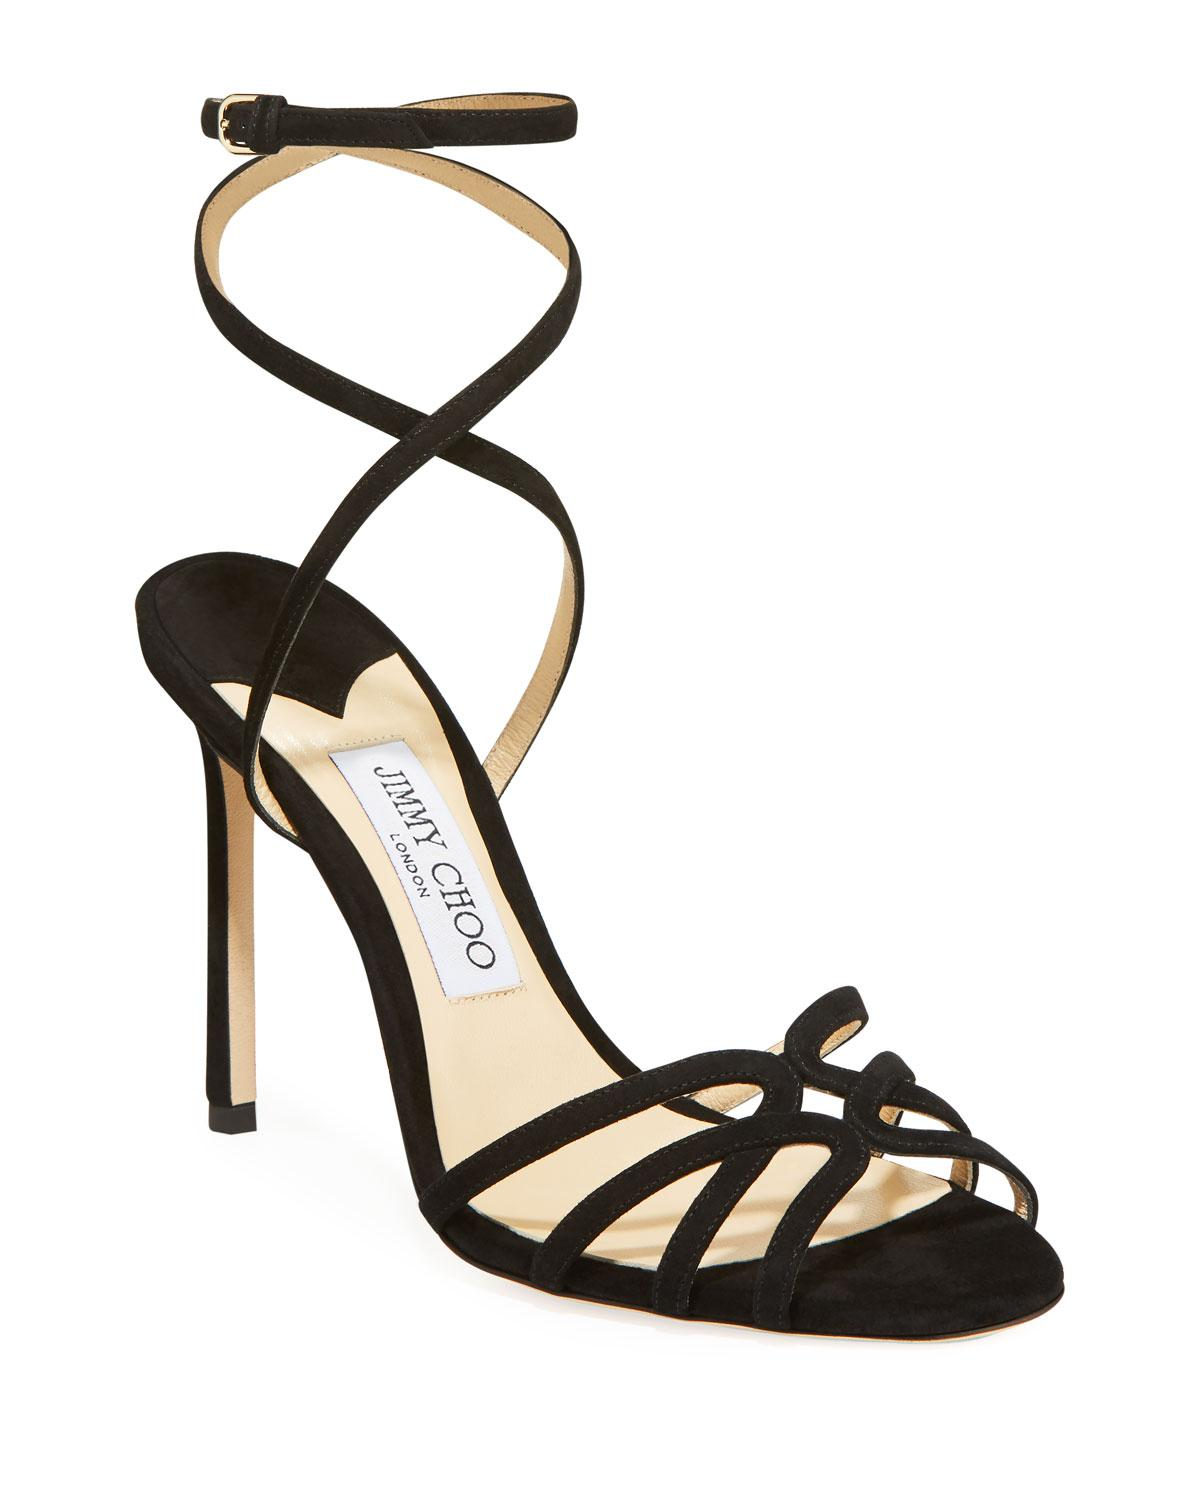 6c4e516595ca Jimmy Choo - Black Mimi 100mm Suede Sandals - Lyst. View fullscreen